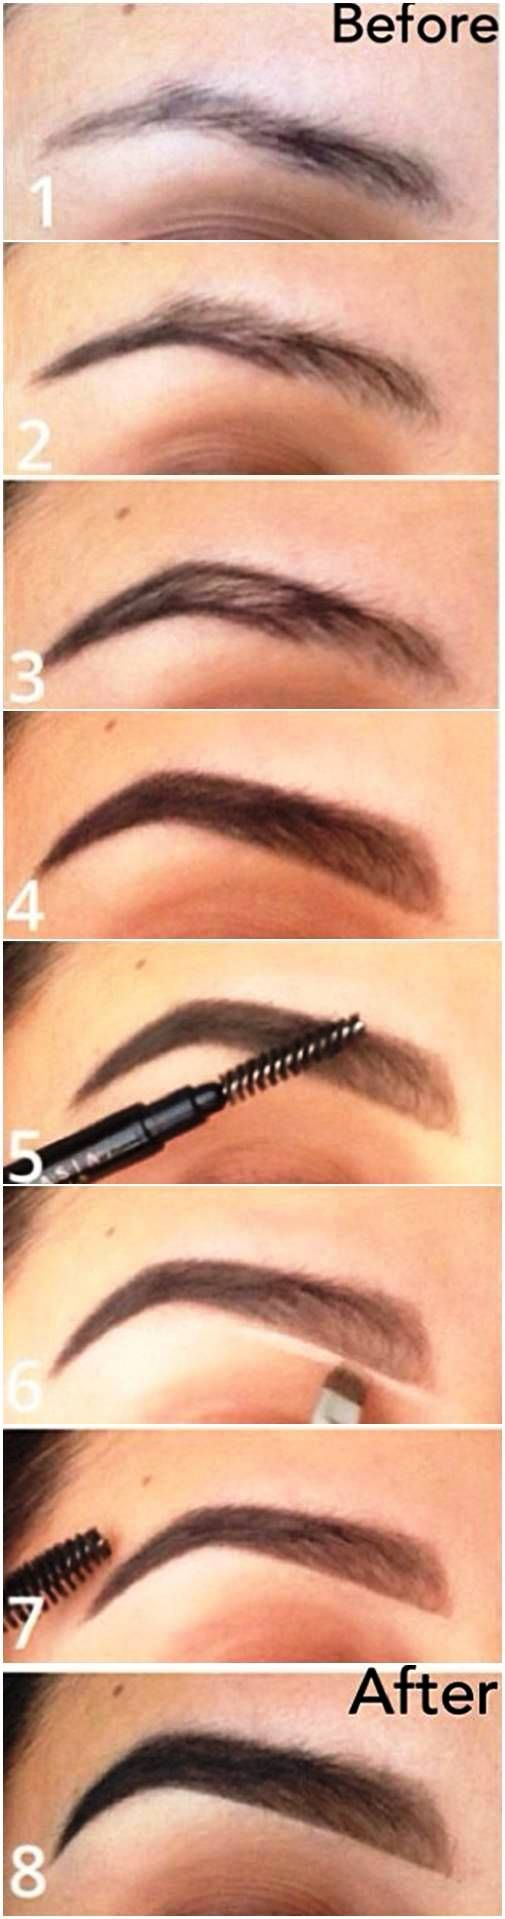 How To: Perfect Brow Tutorial